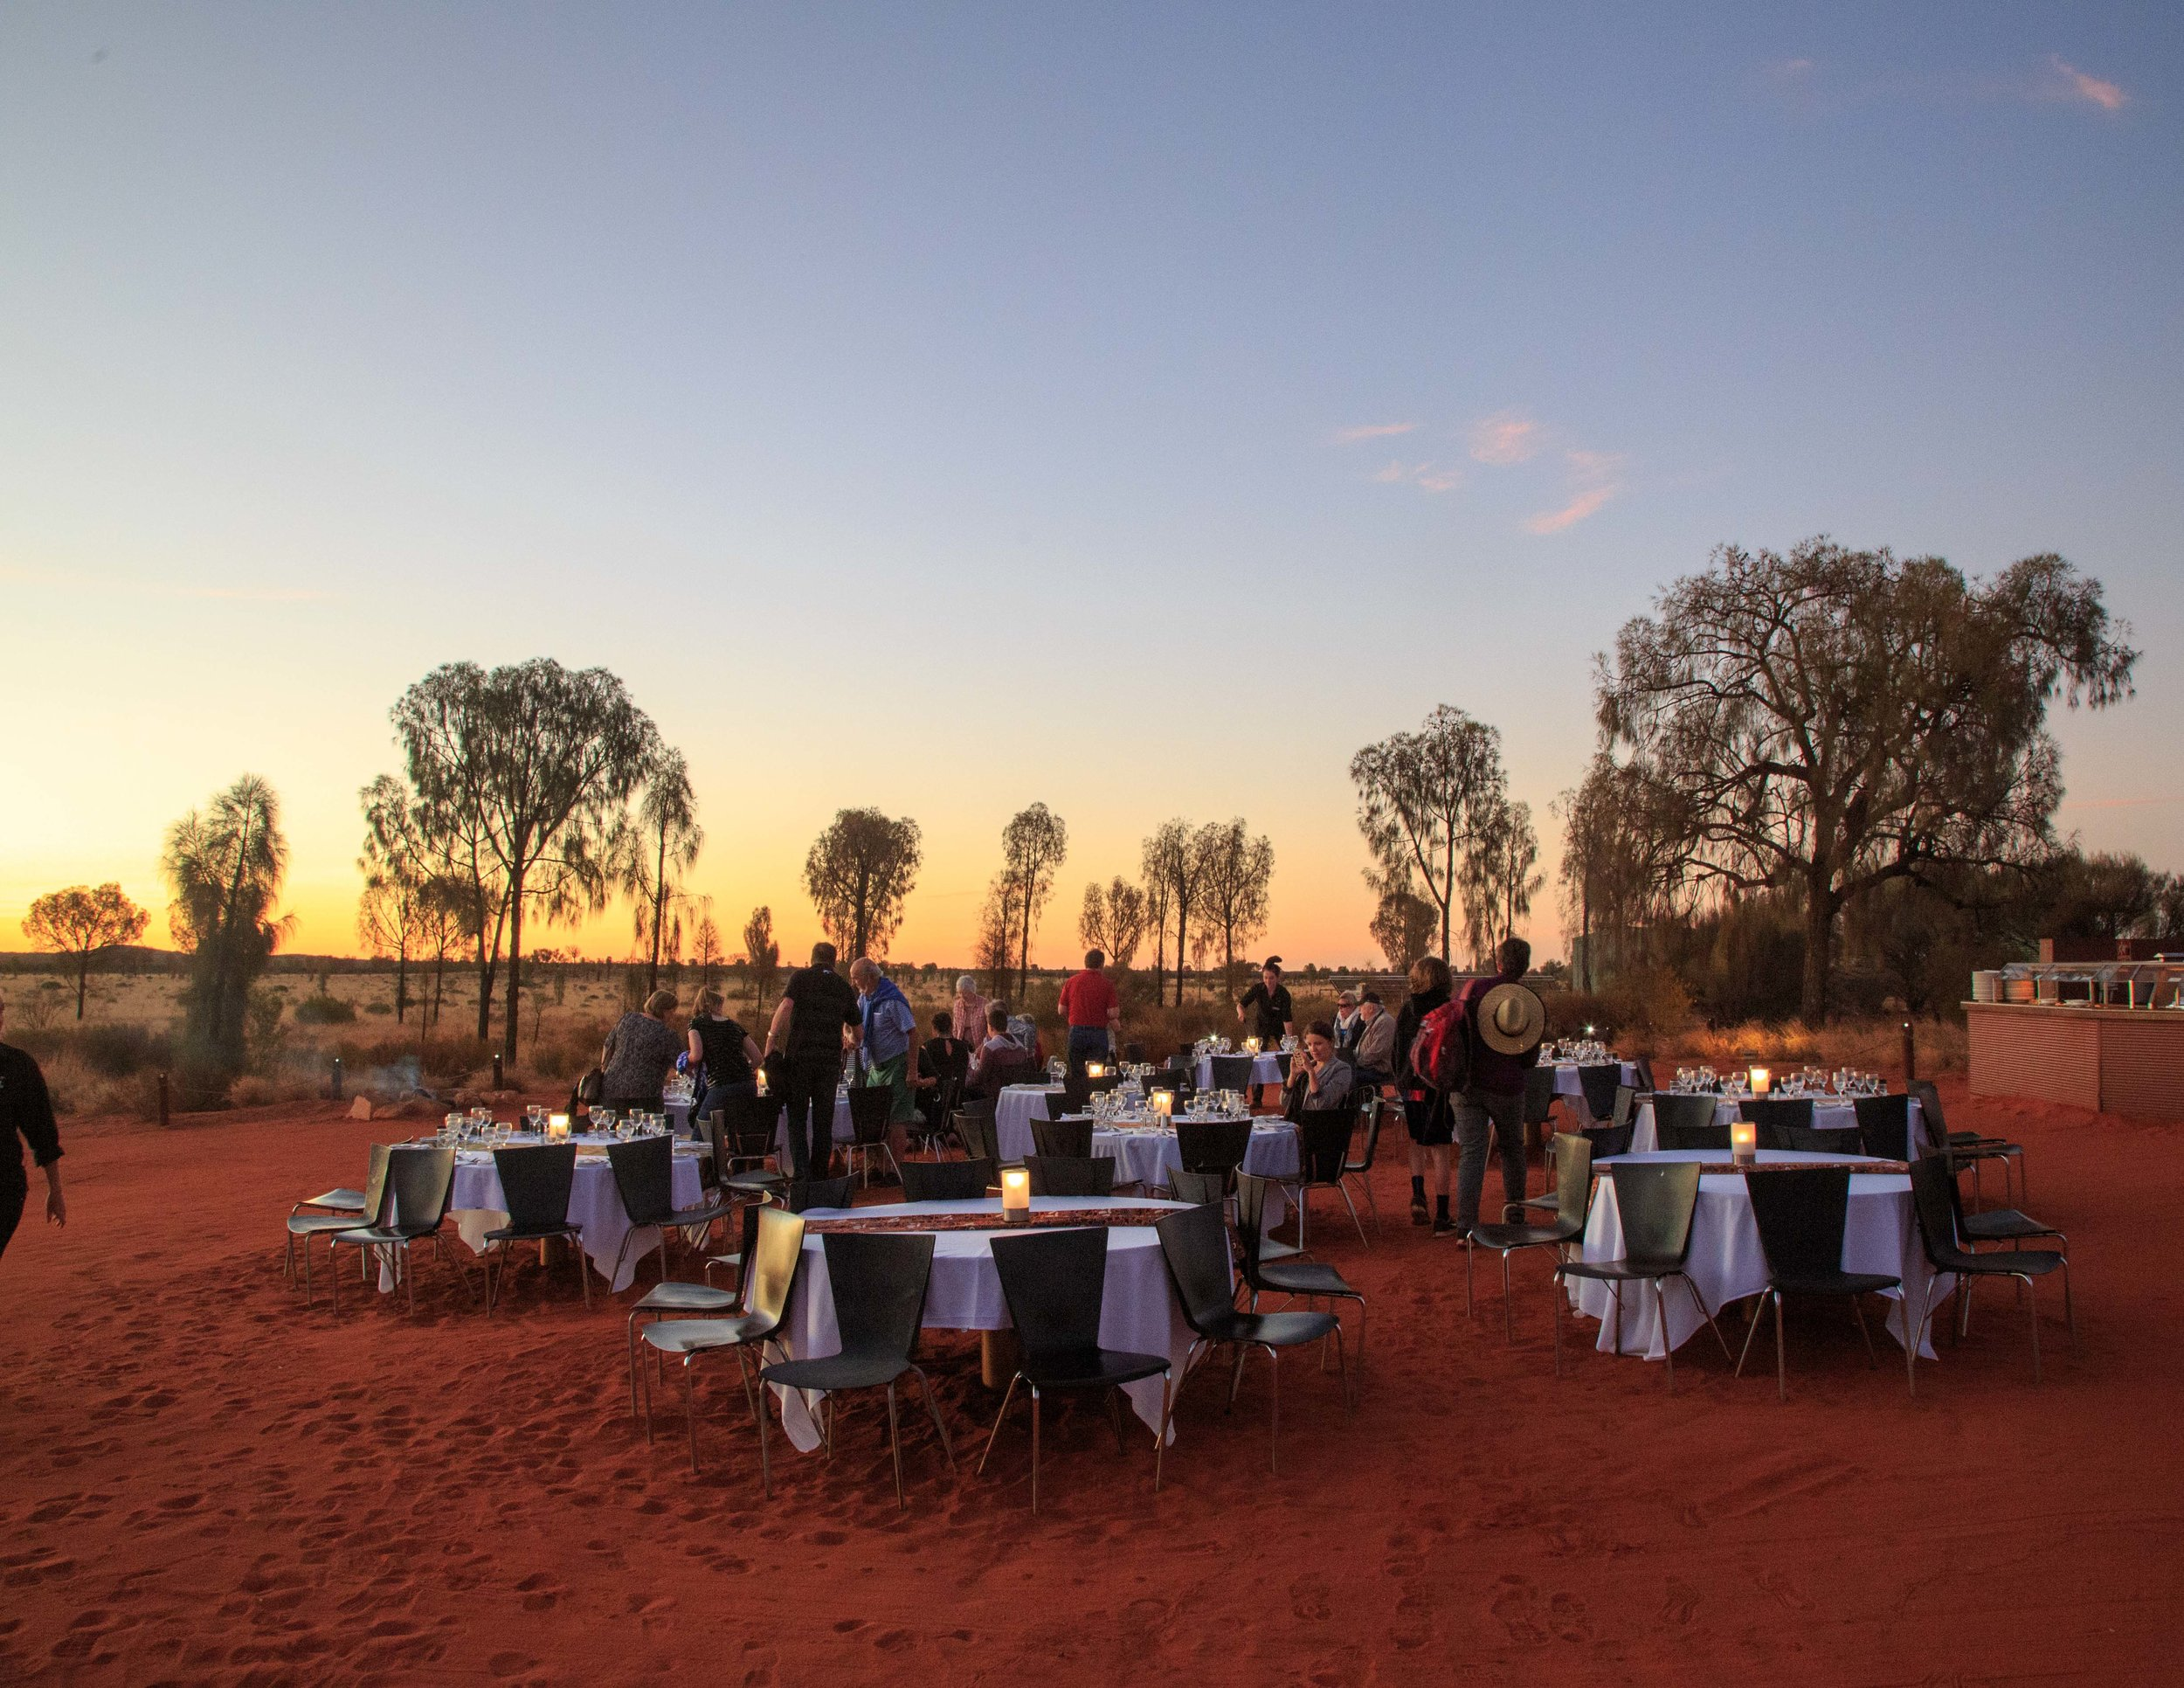 Instagrammable spots in the Outback: Sounds of Silence